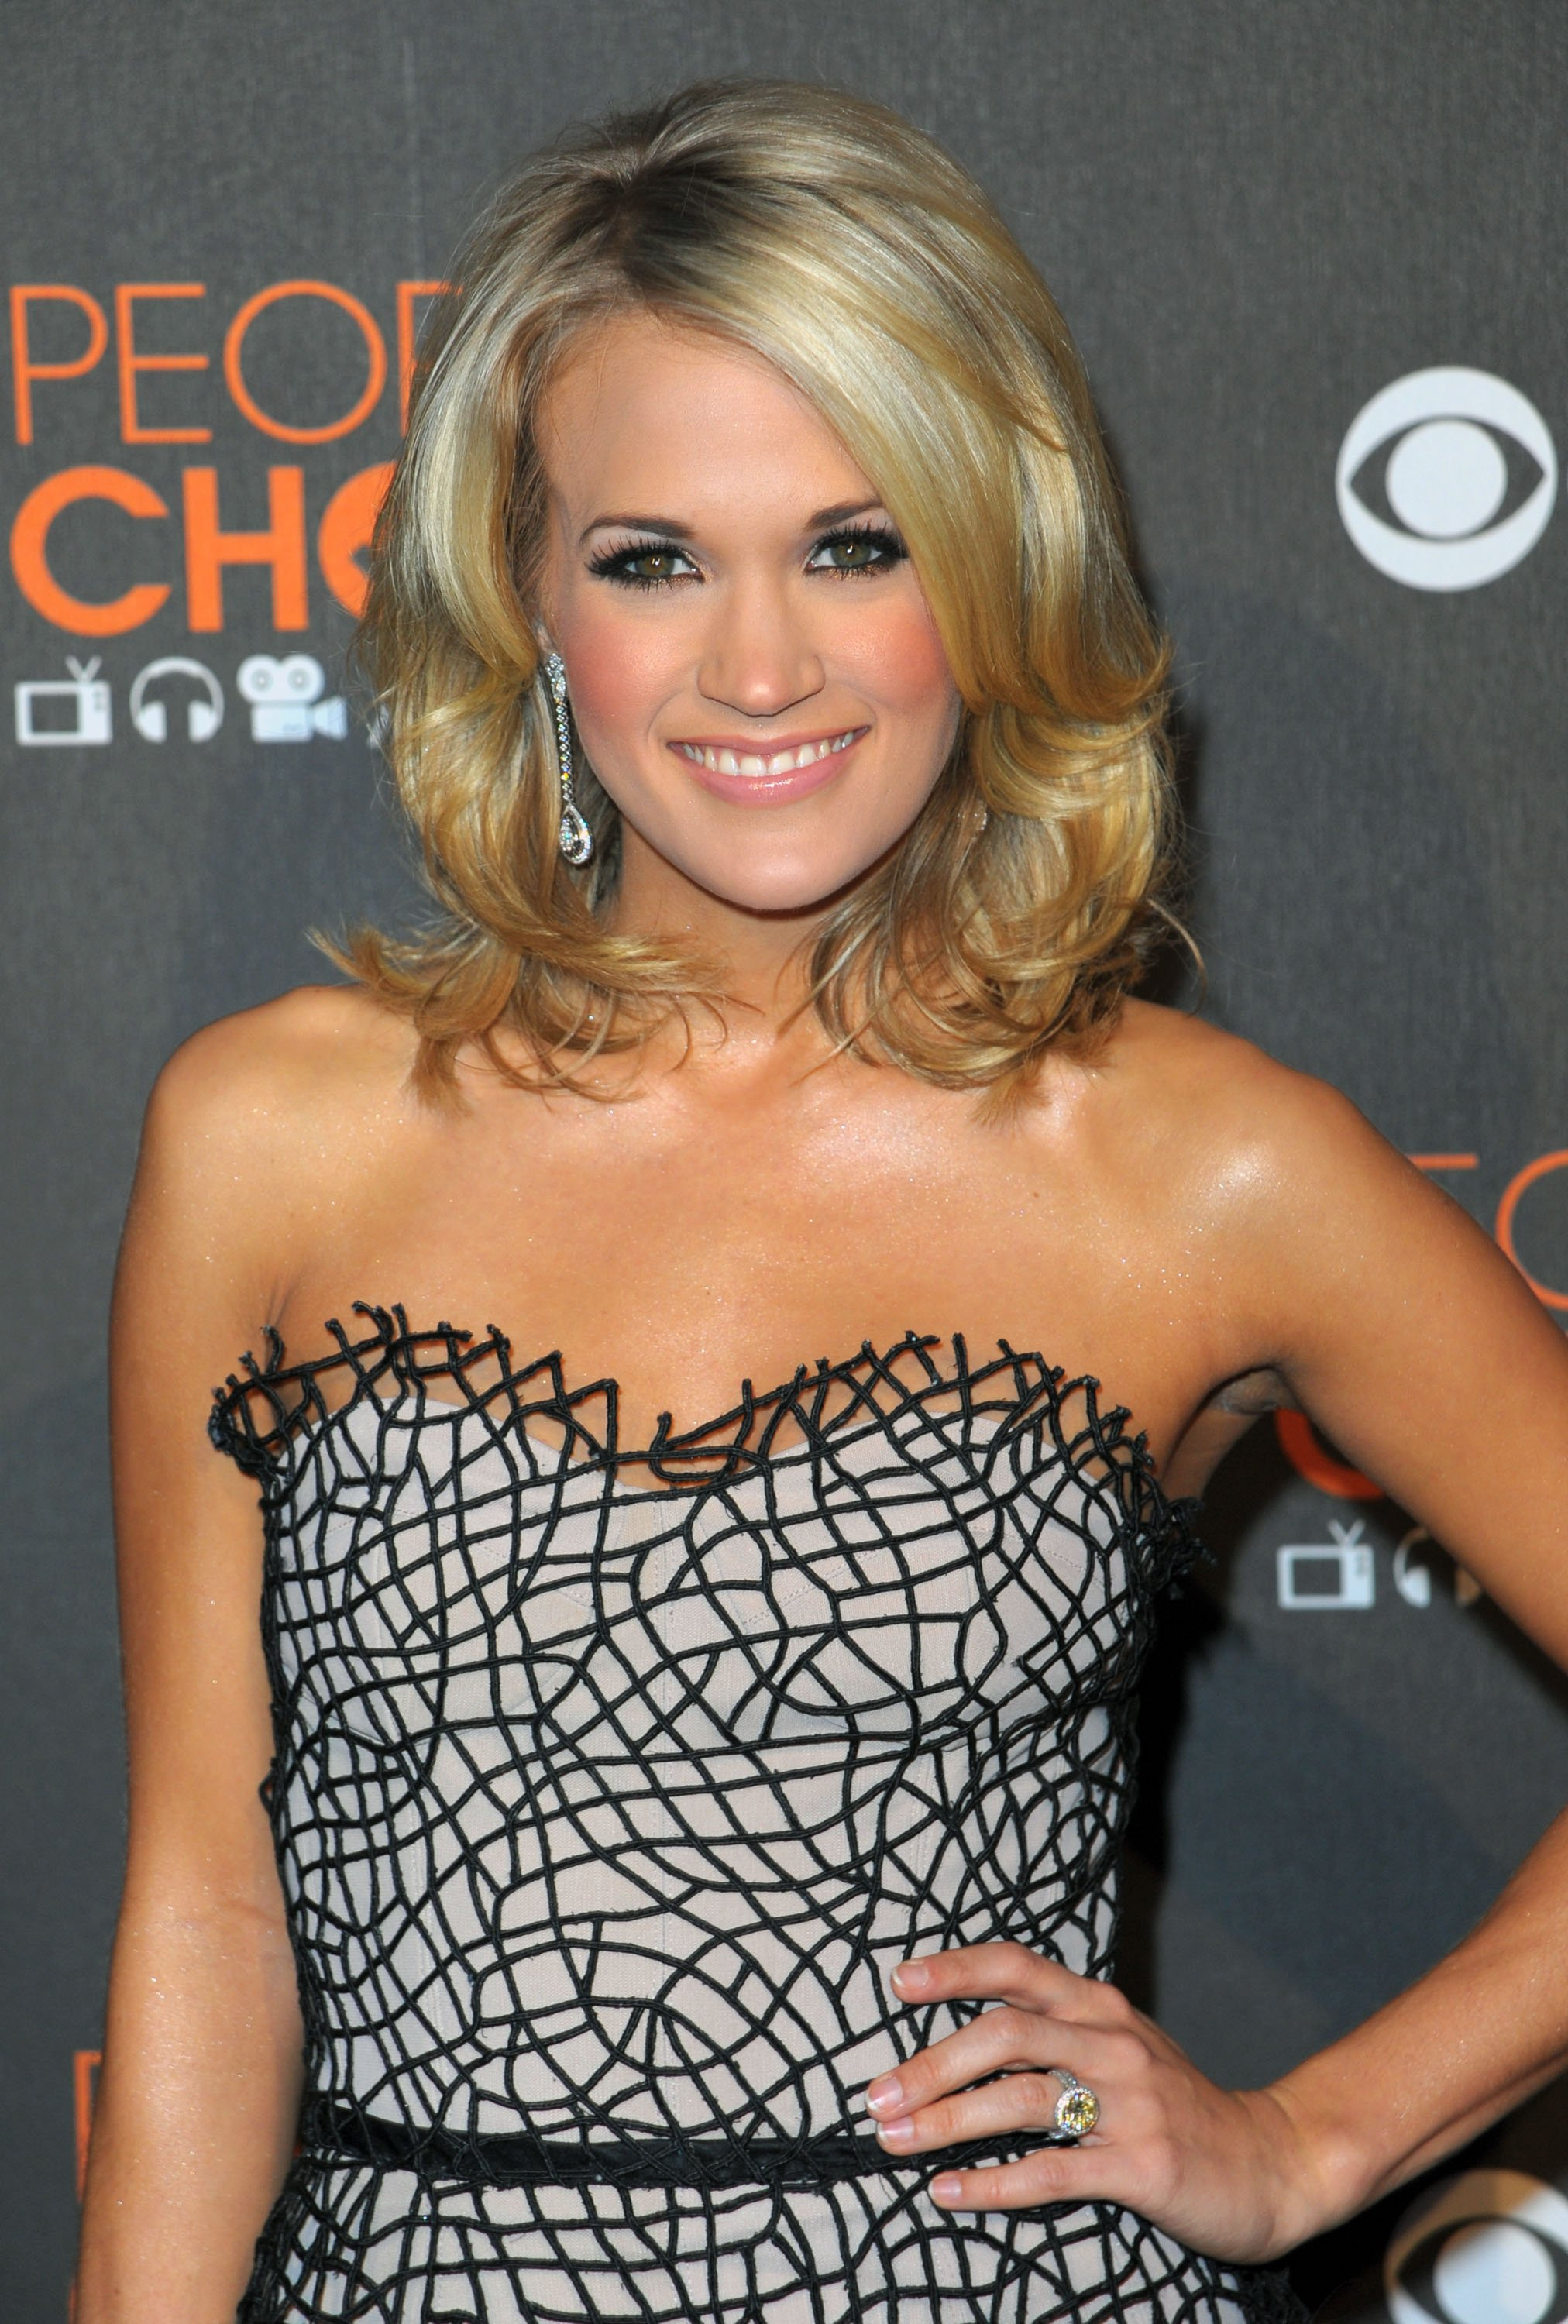 27416_Celebutopia-Carrie_Underwood_arrives_at_the_People8s_Choice_Awards_2010-03_122_226lo.jpg